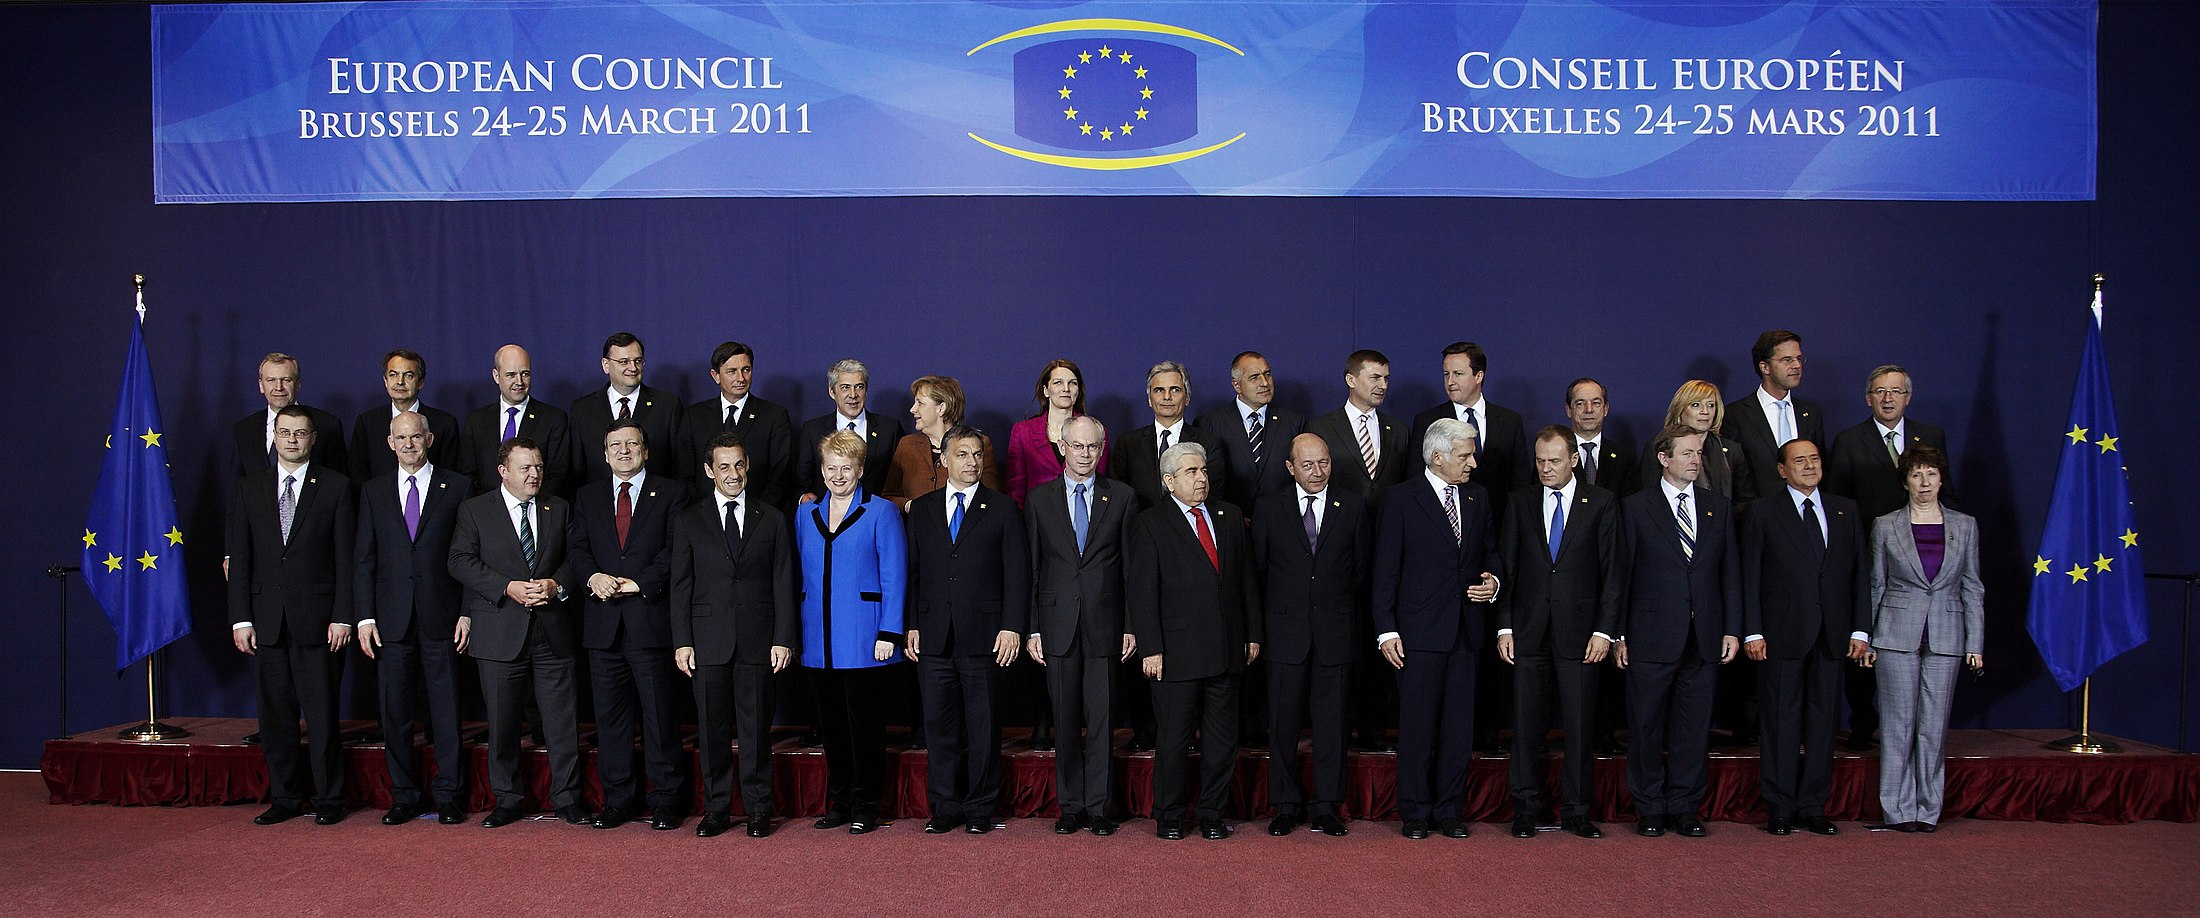 are council ministers european council